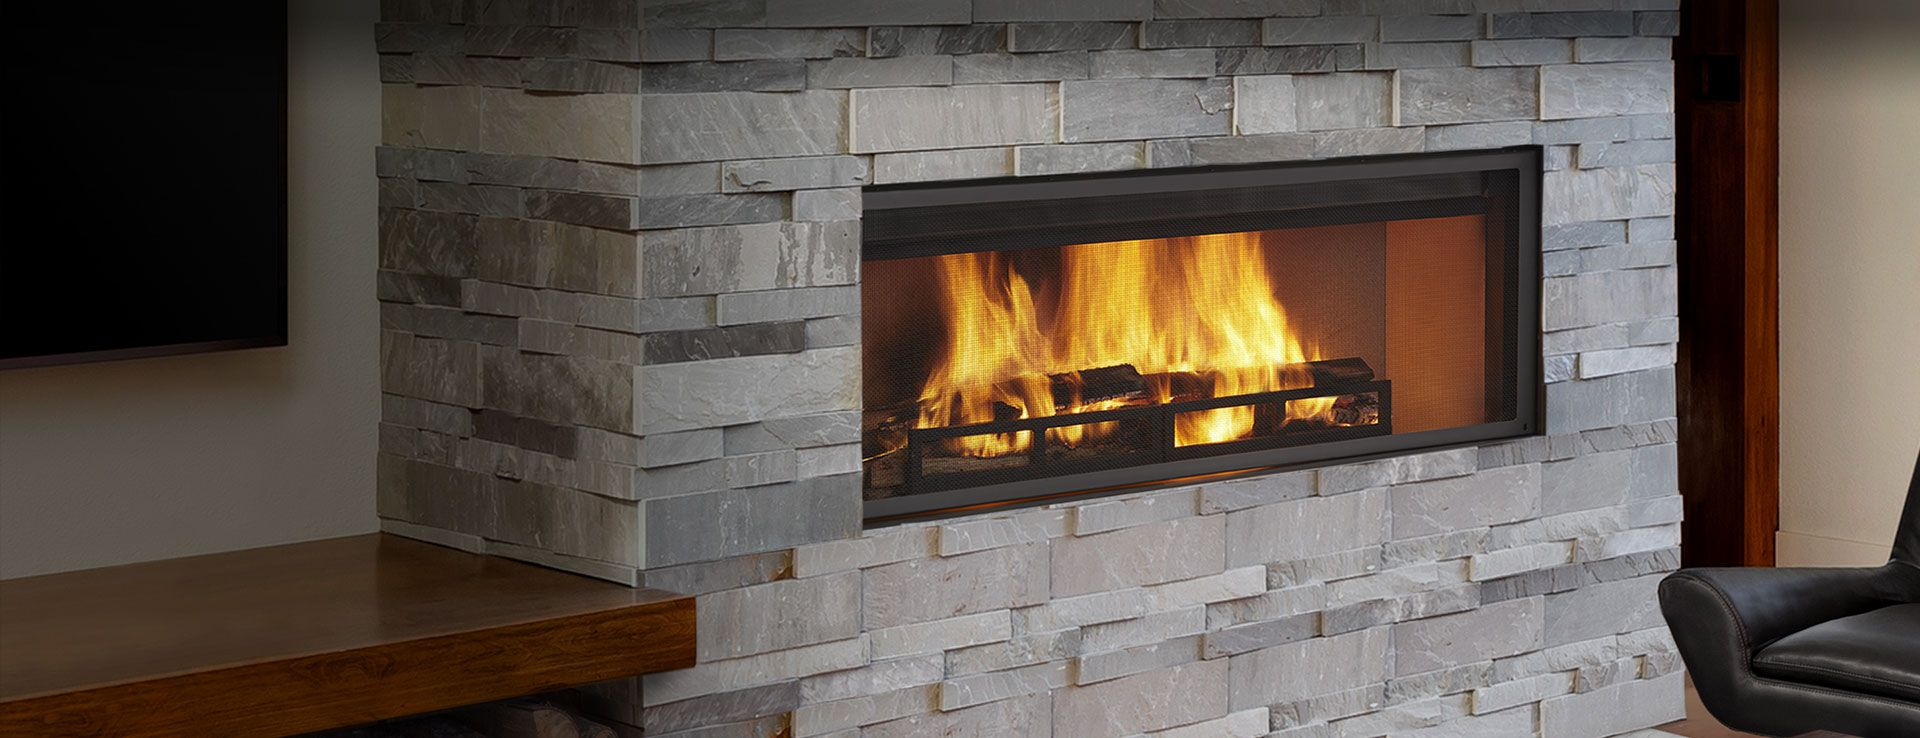 Heatilator Proudly Presents Its First Modern Linear Wood Burning